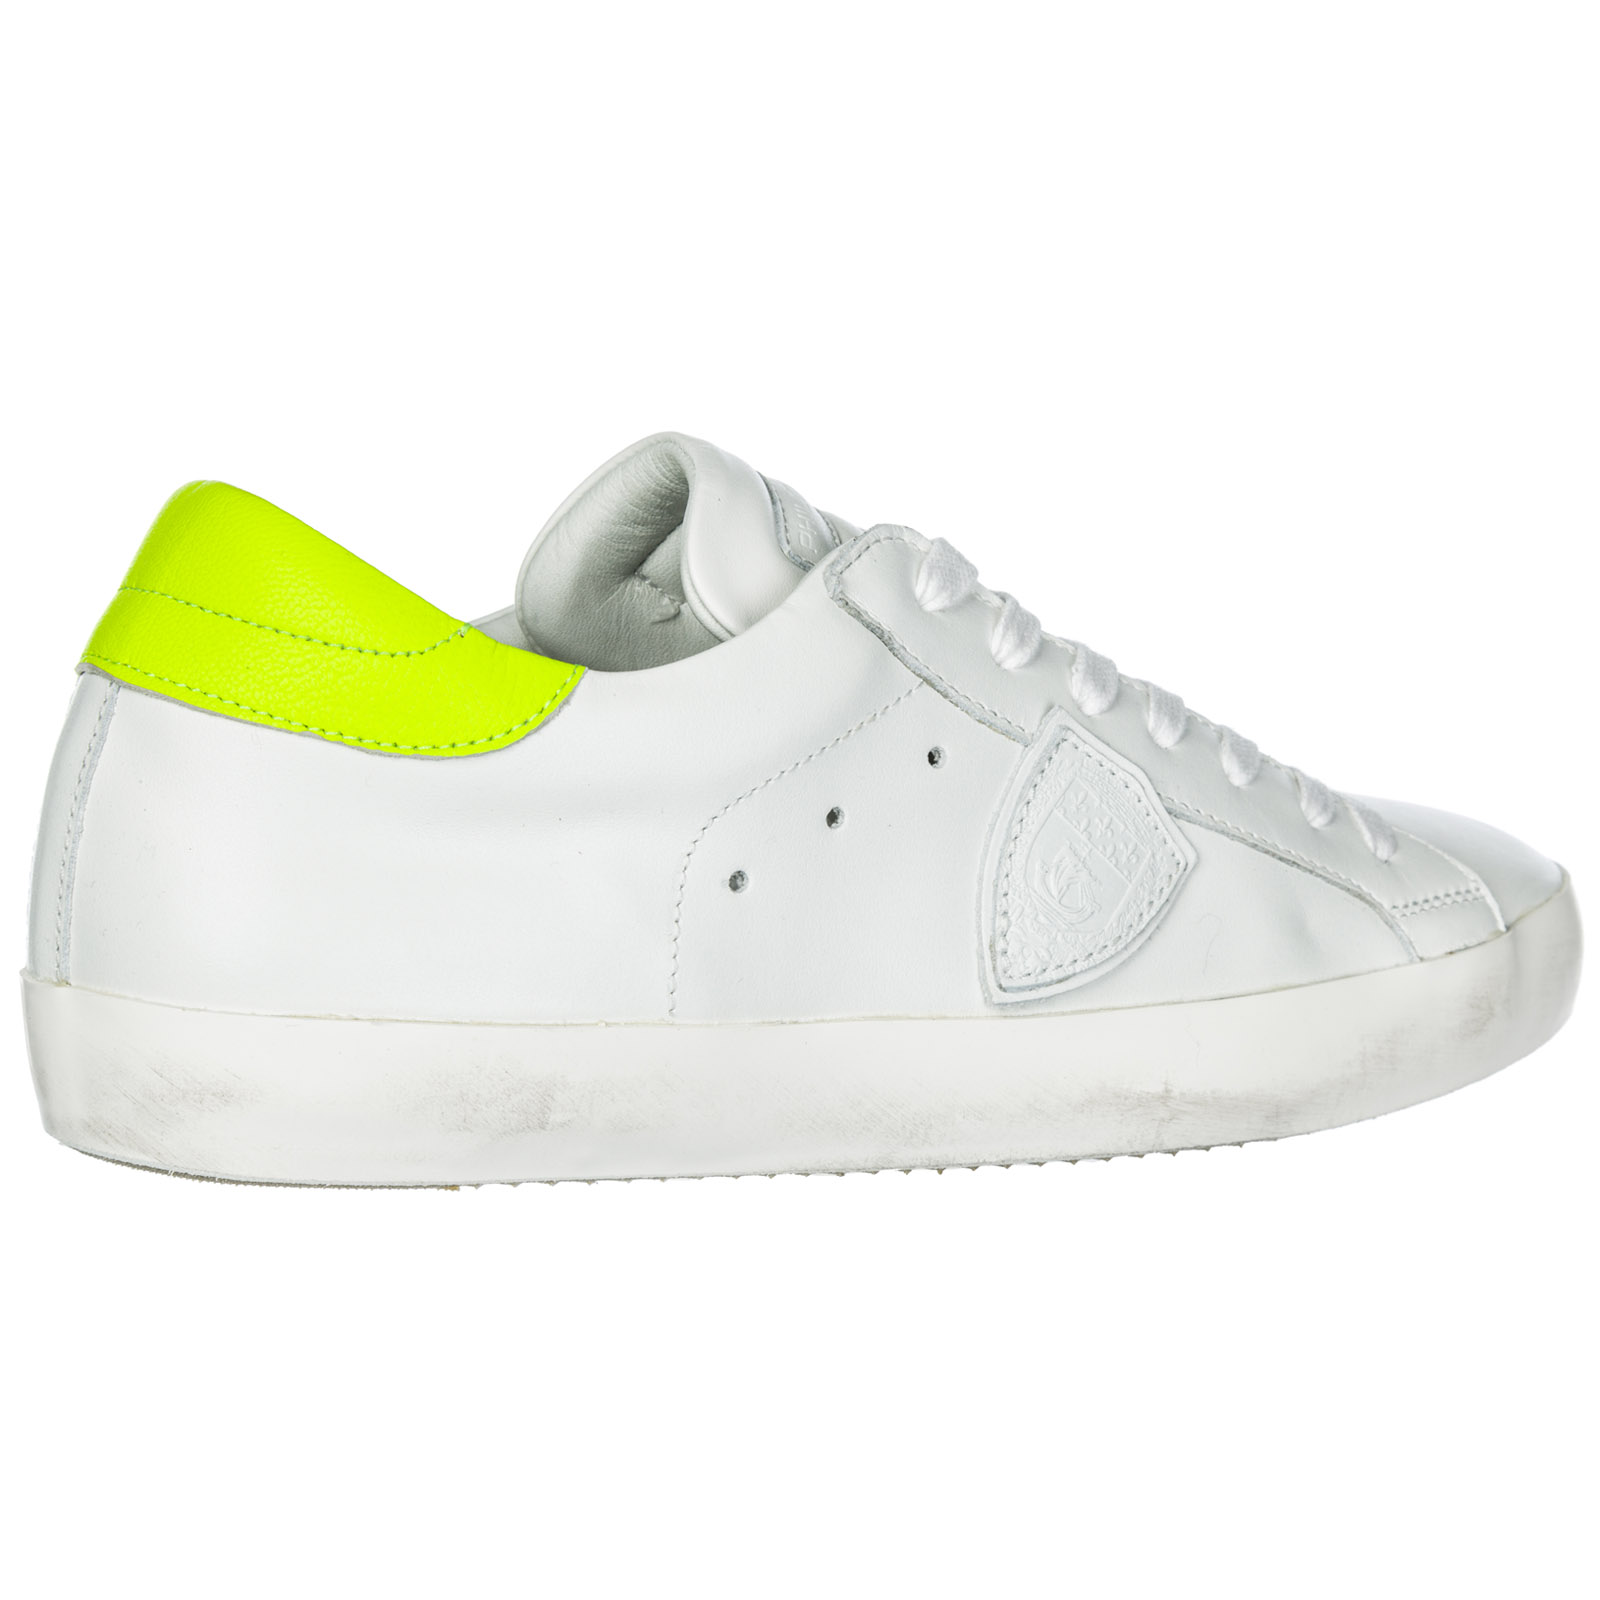 56bee41042e799 Basket Philippe Model Paris A19ECLLUVN06 veau neon blanc jaune ...